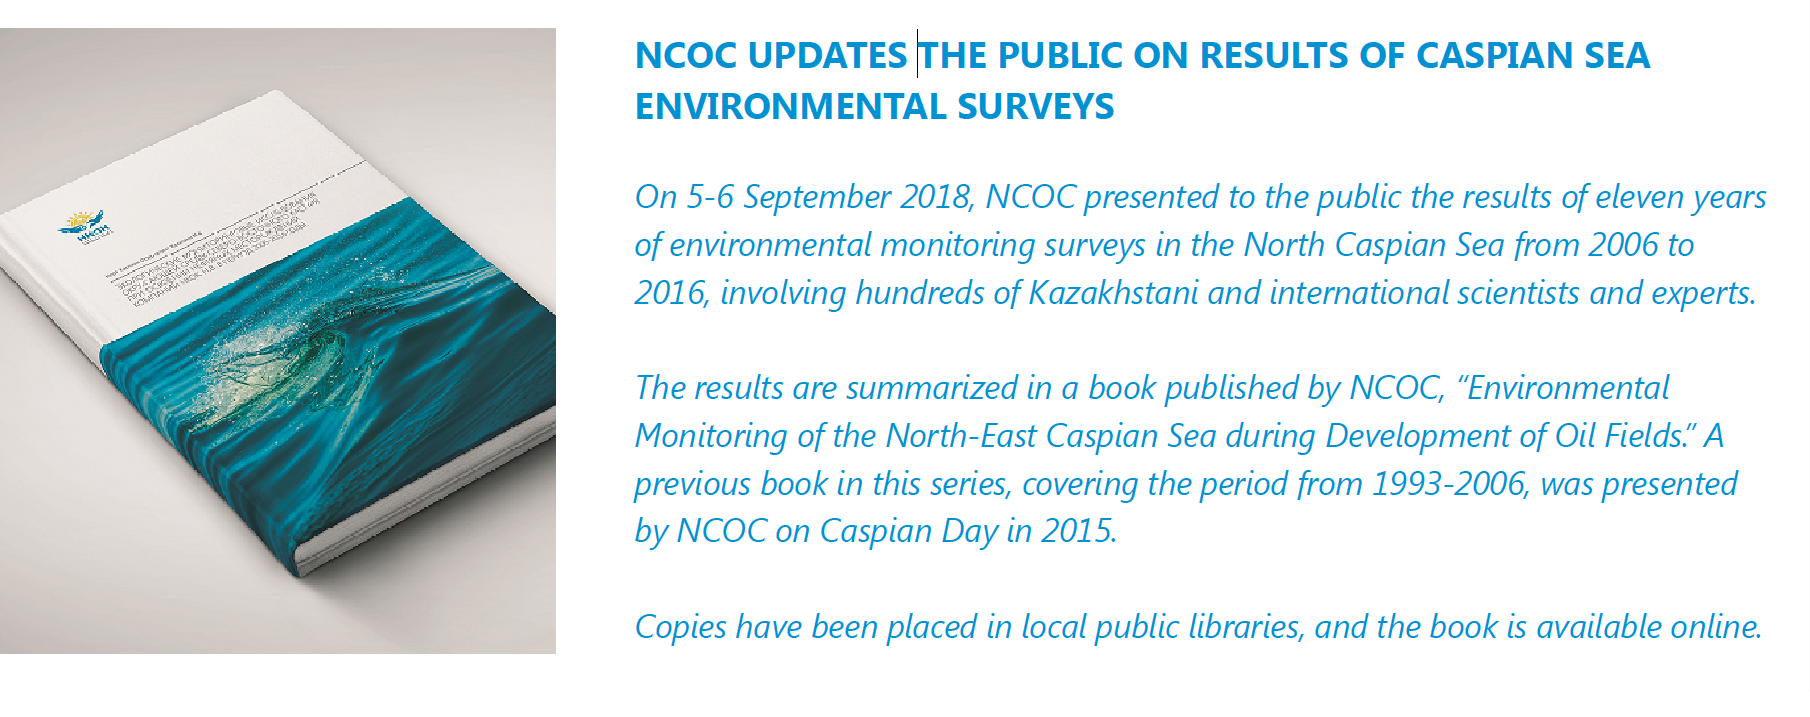 NCOC UPDATES THE PUBLIC ON RESULTS OF CASPIAN SEA